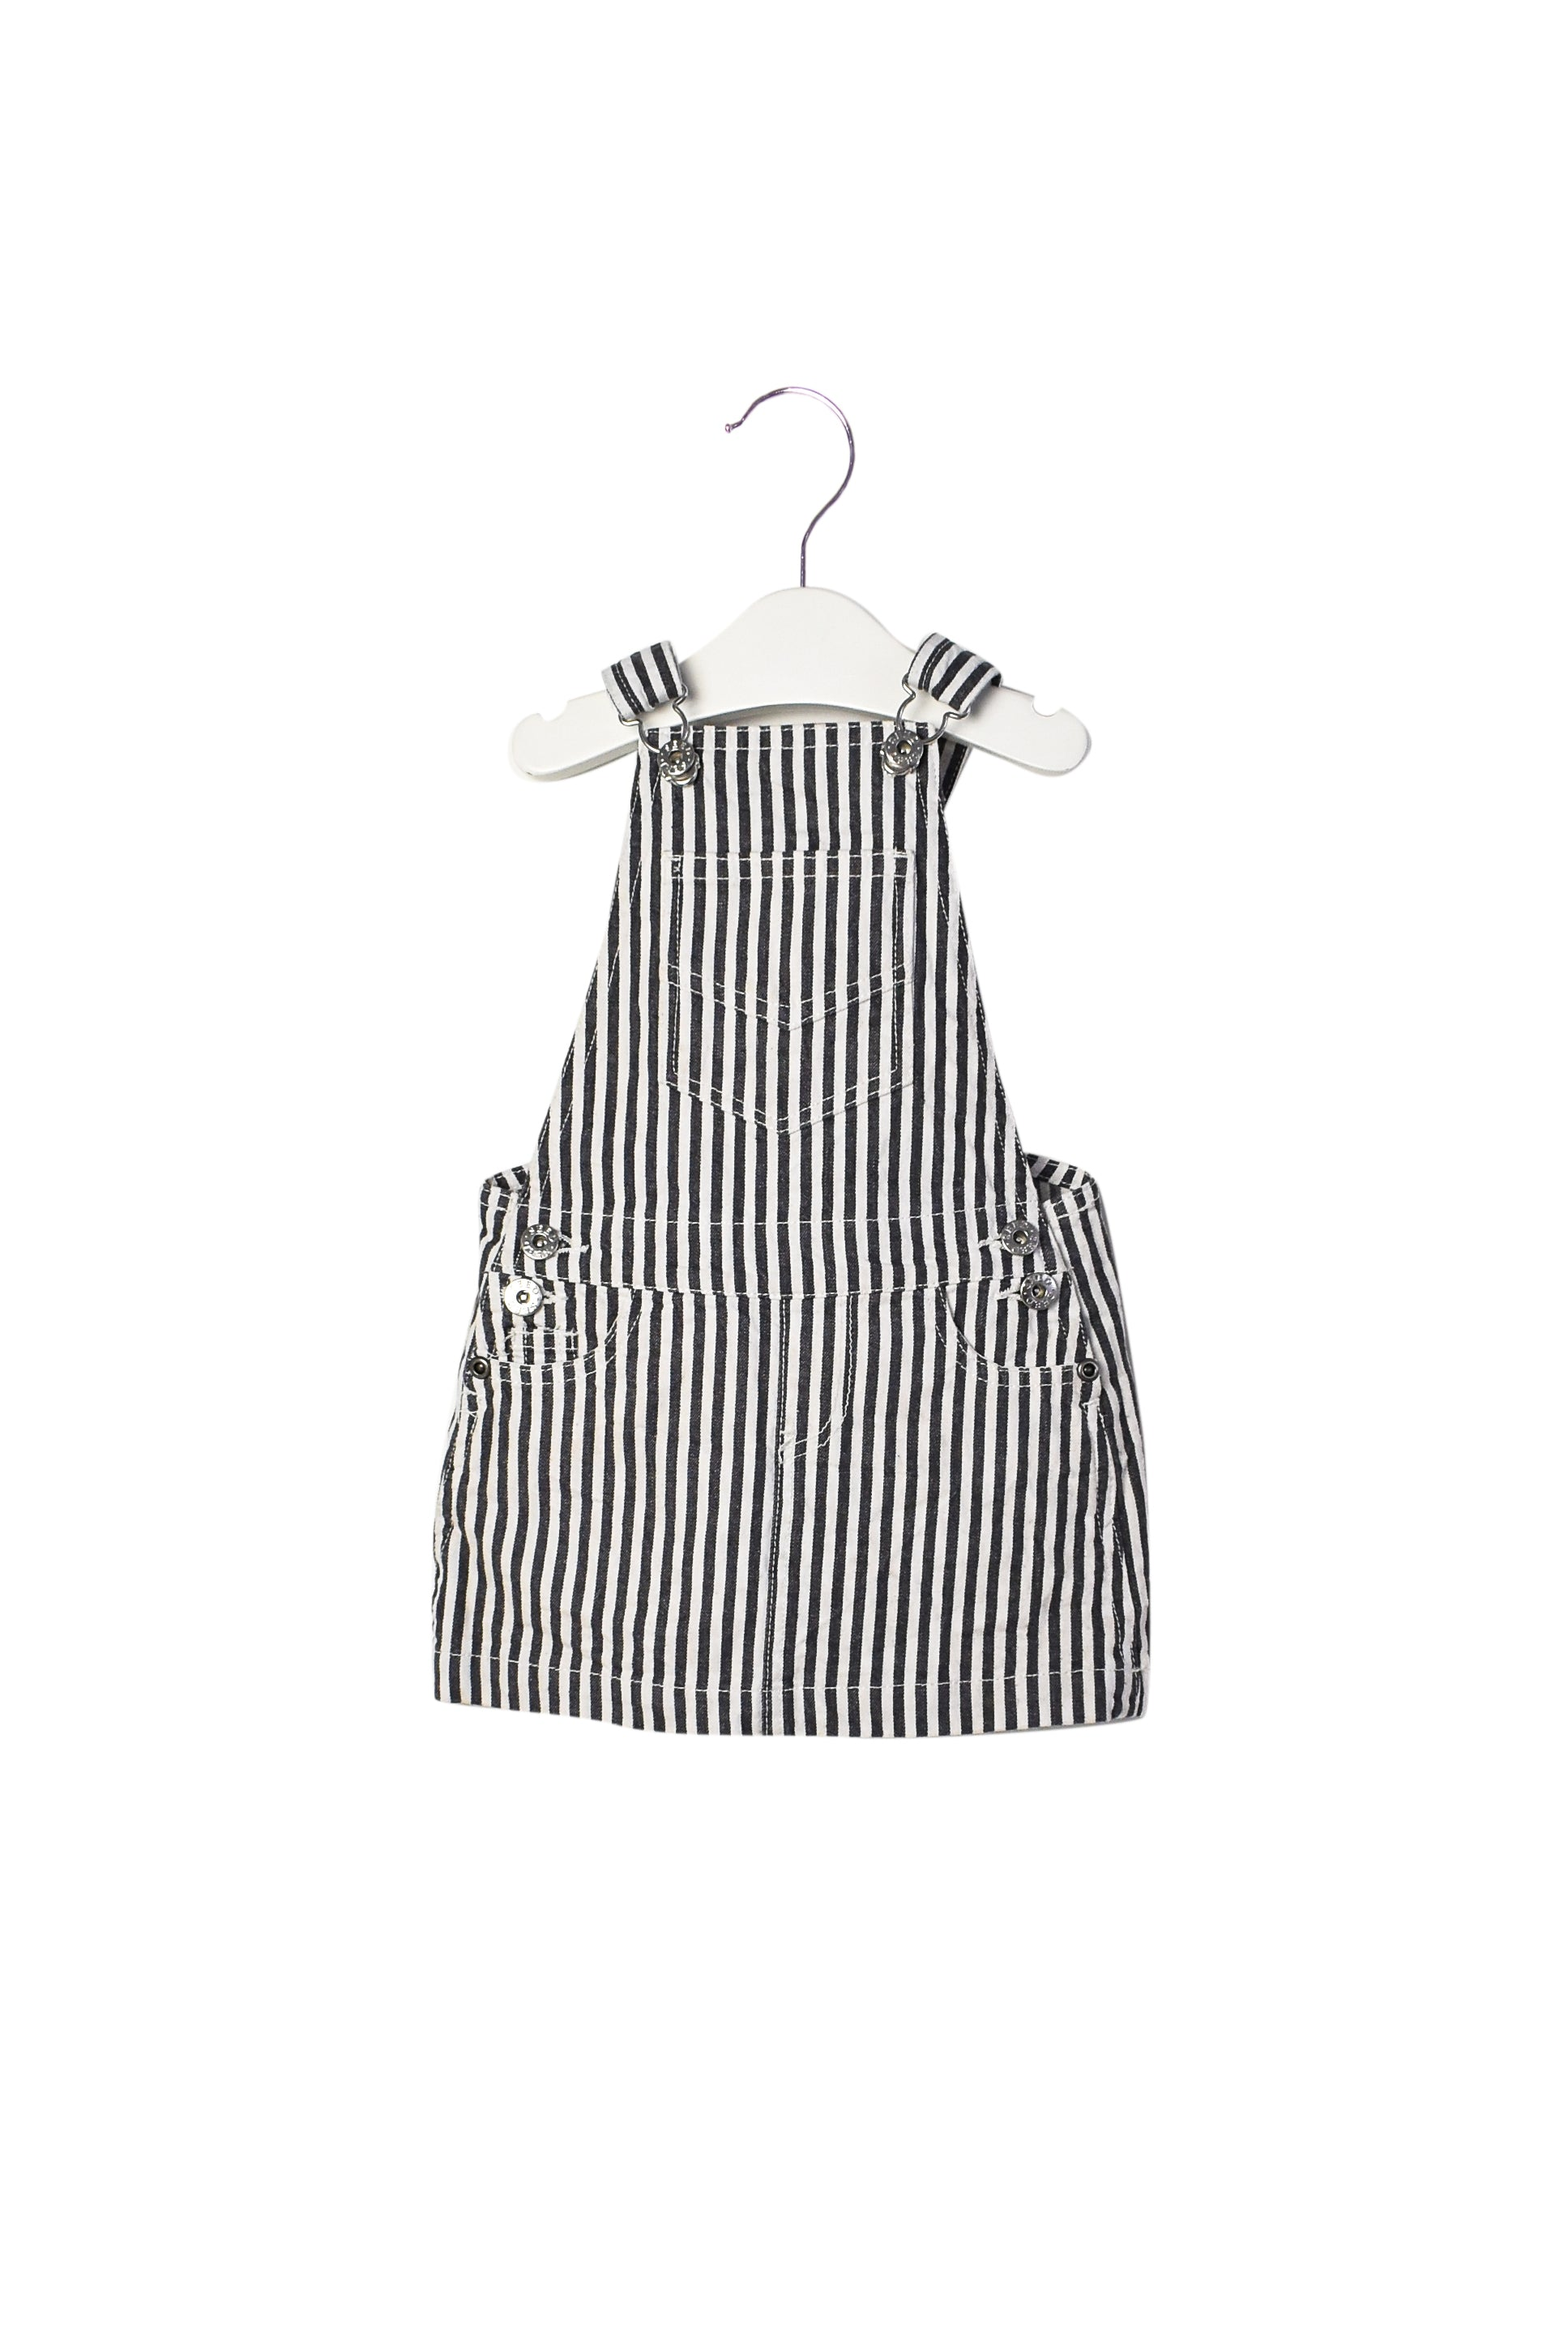 10007606 Seed Kids~Pinafore 2T at Retykle